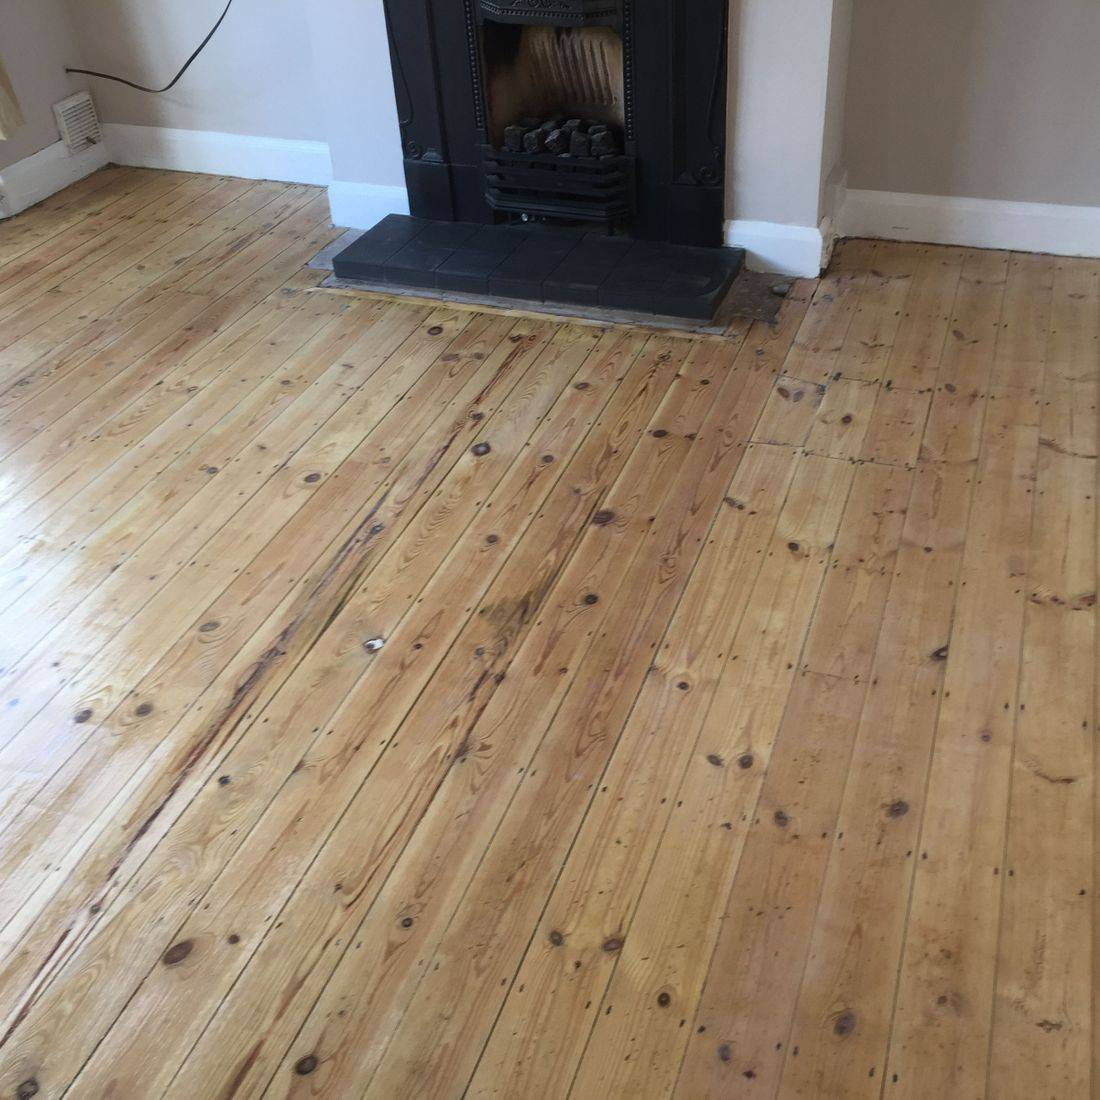 Floor sanding restoration Business Opportunity for sale